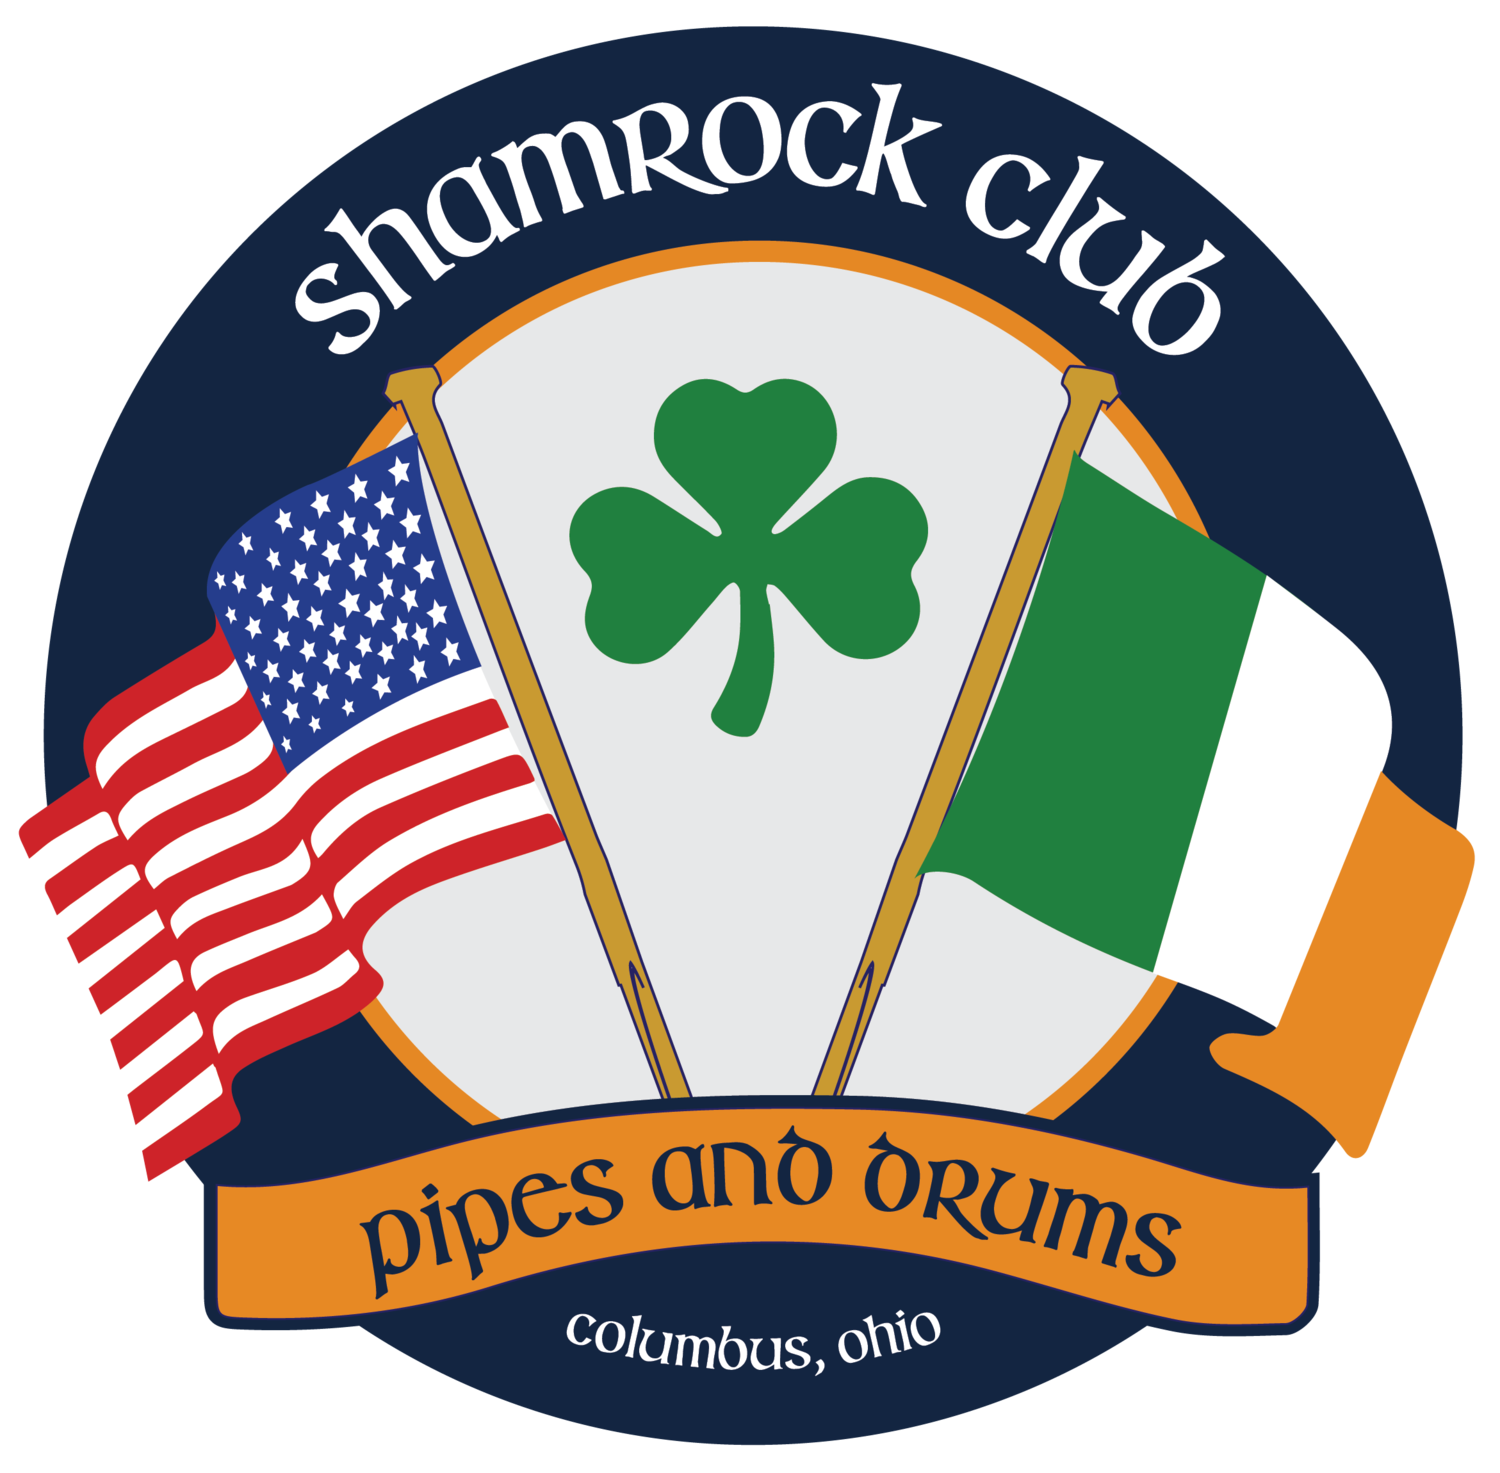 Shamrock Club Pipes and Drums